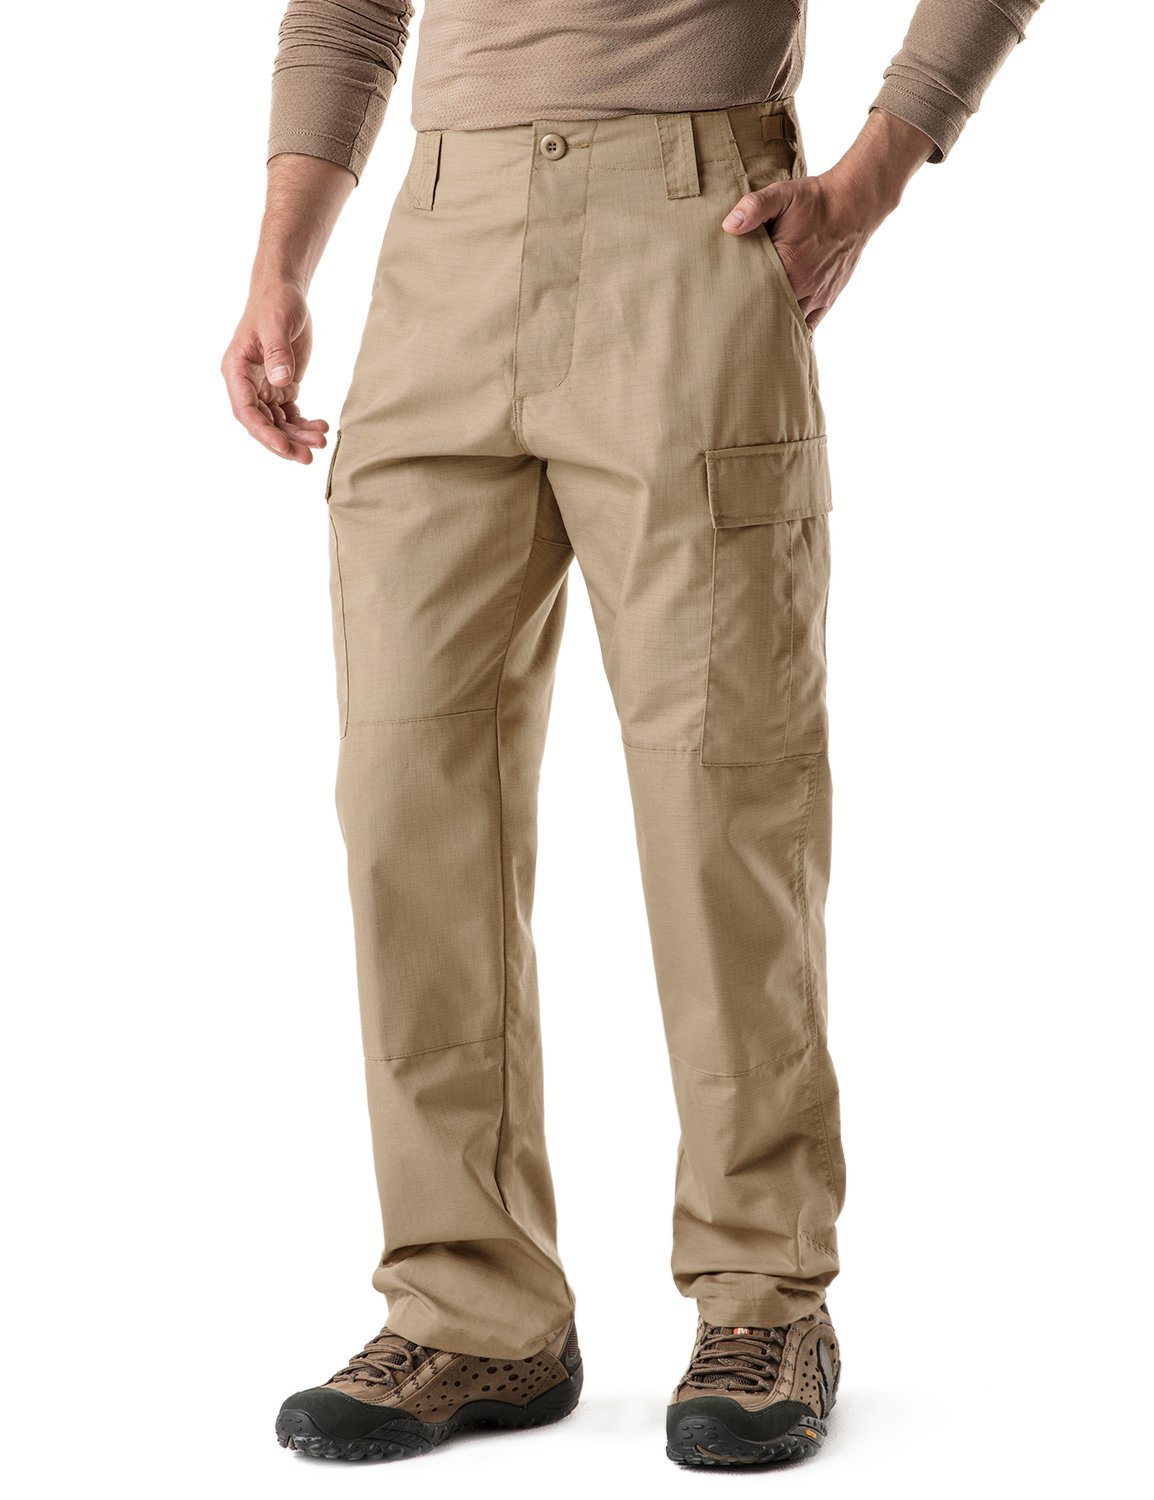 CQR CQ-UBP01-KHK_M/Regular Men's BDU Rip Stop Trouser EDC Tactical Combat Pants UBP01 by CQR